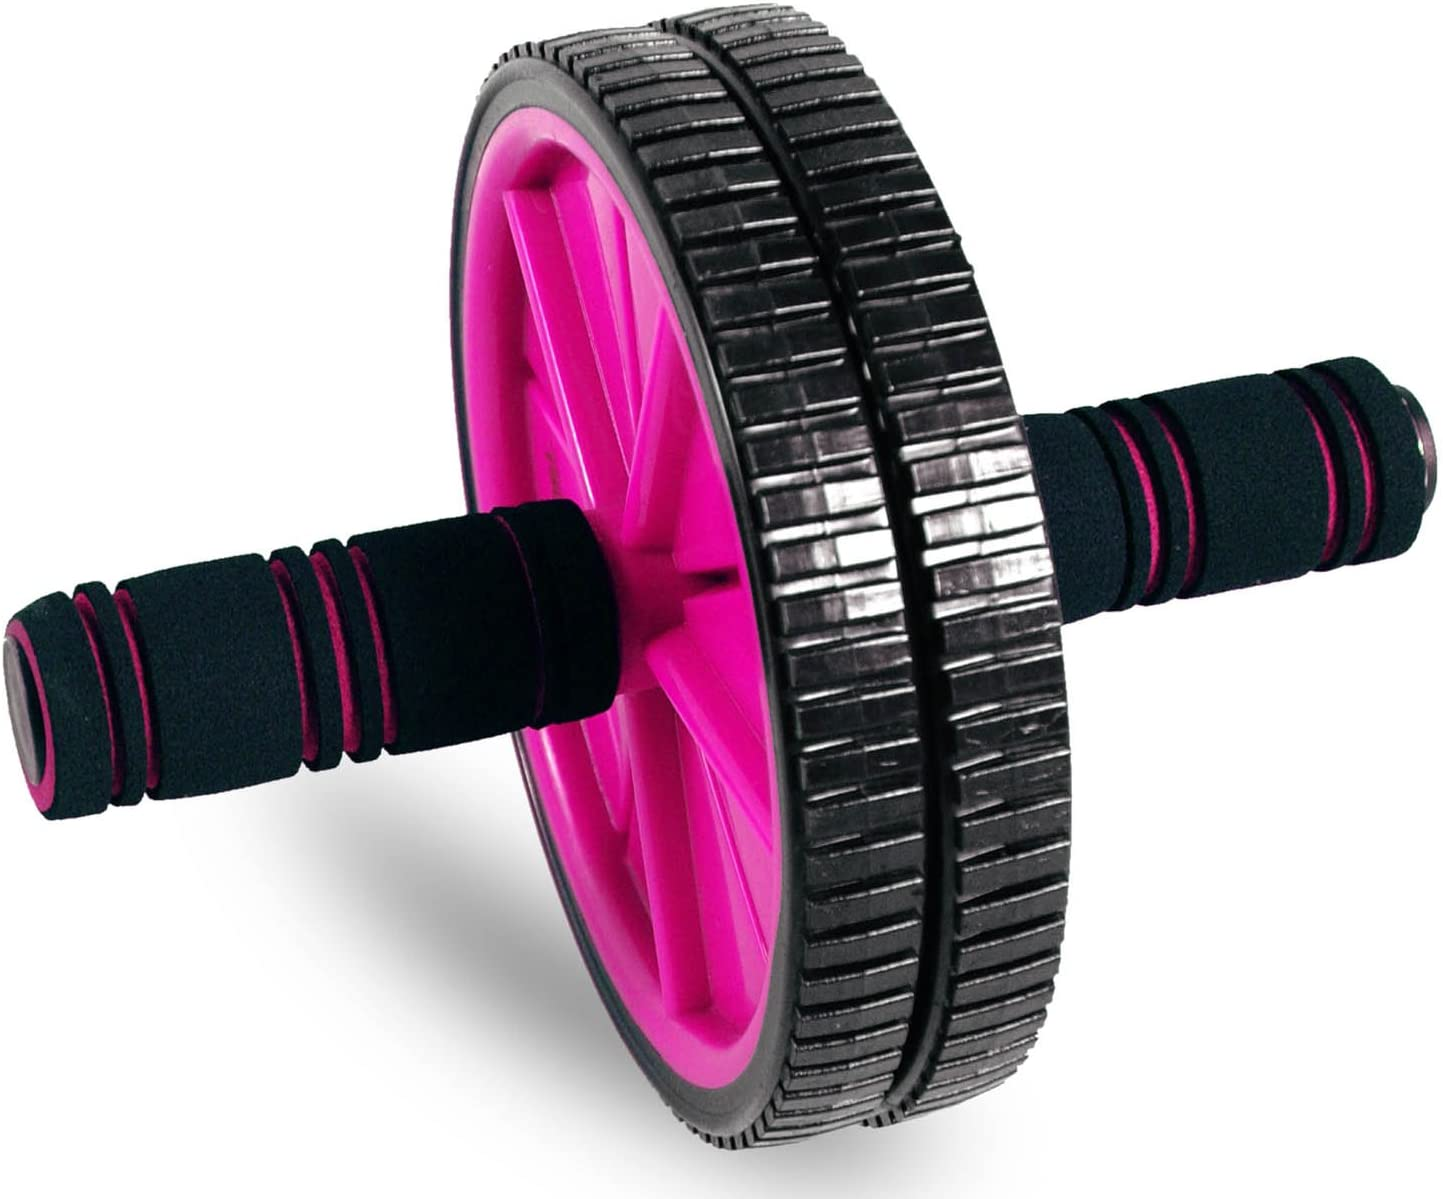 Tone Fitness Ab Roller Wheel for Abs Workout | Ab Roller | Exercise Equipment & Accessories